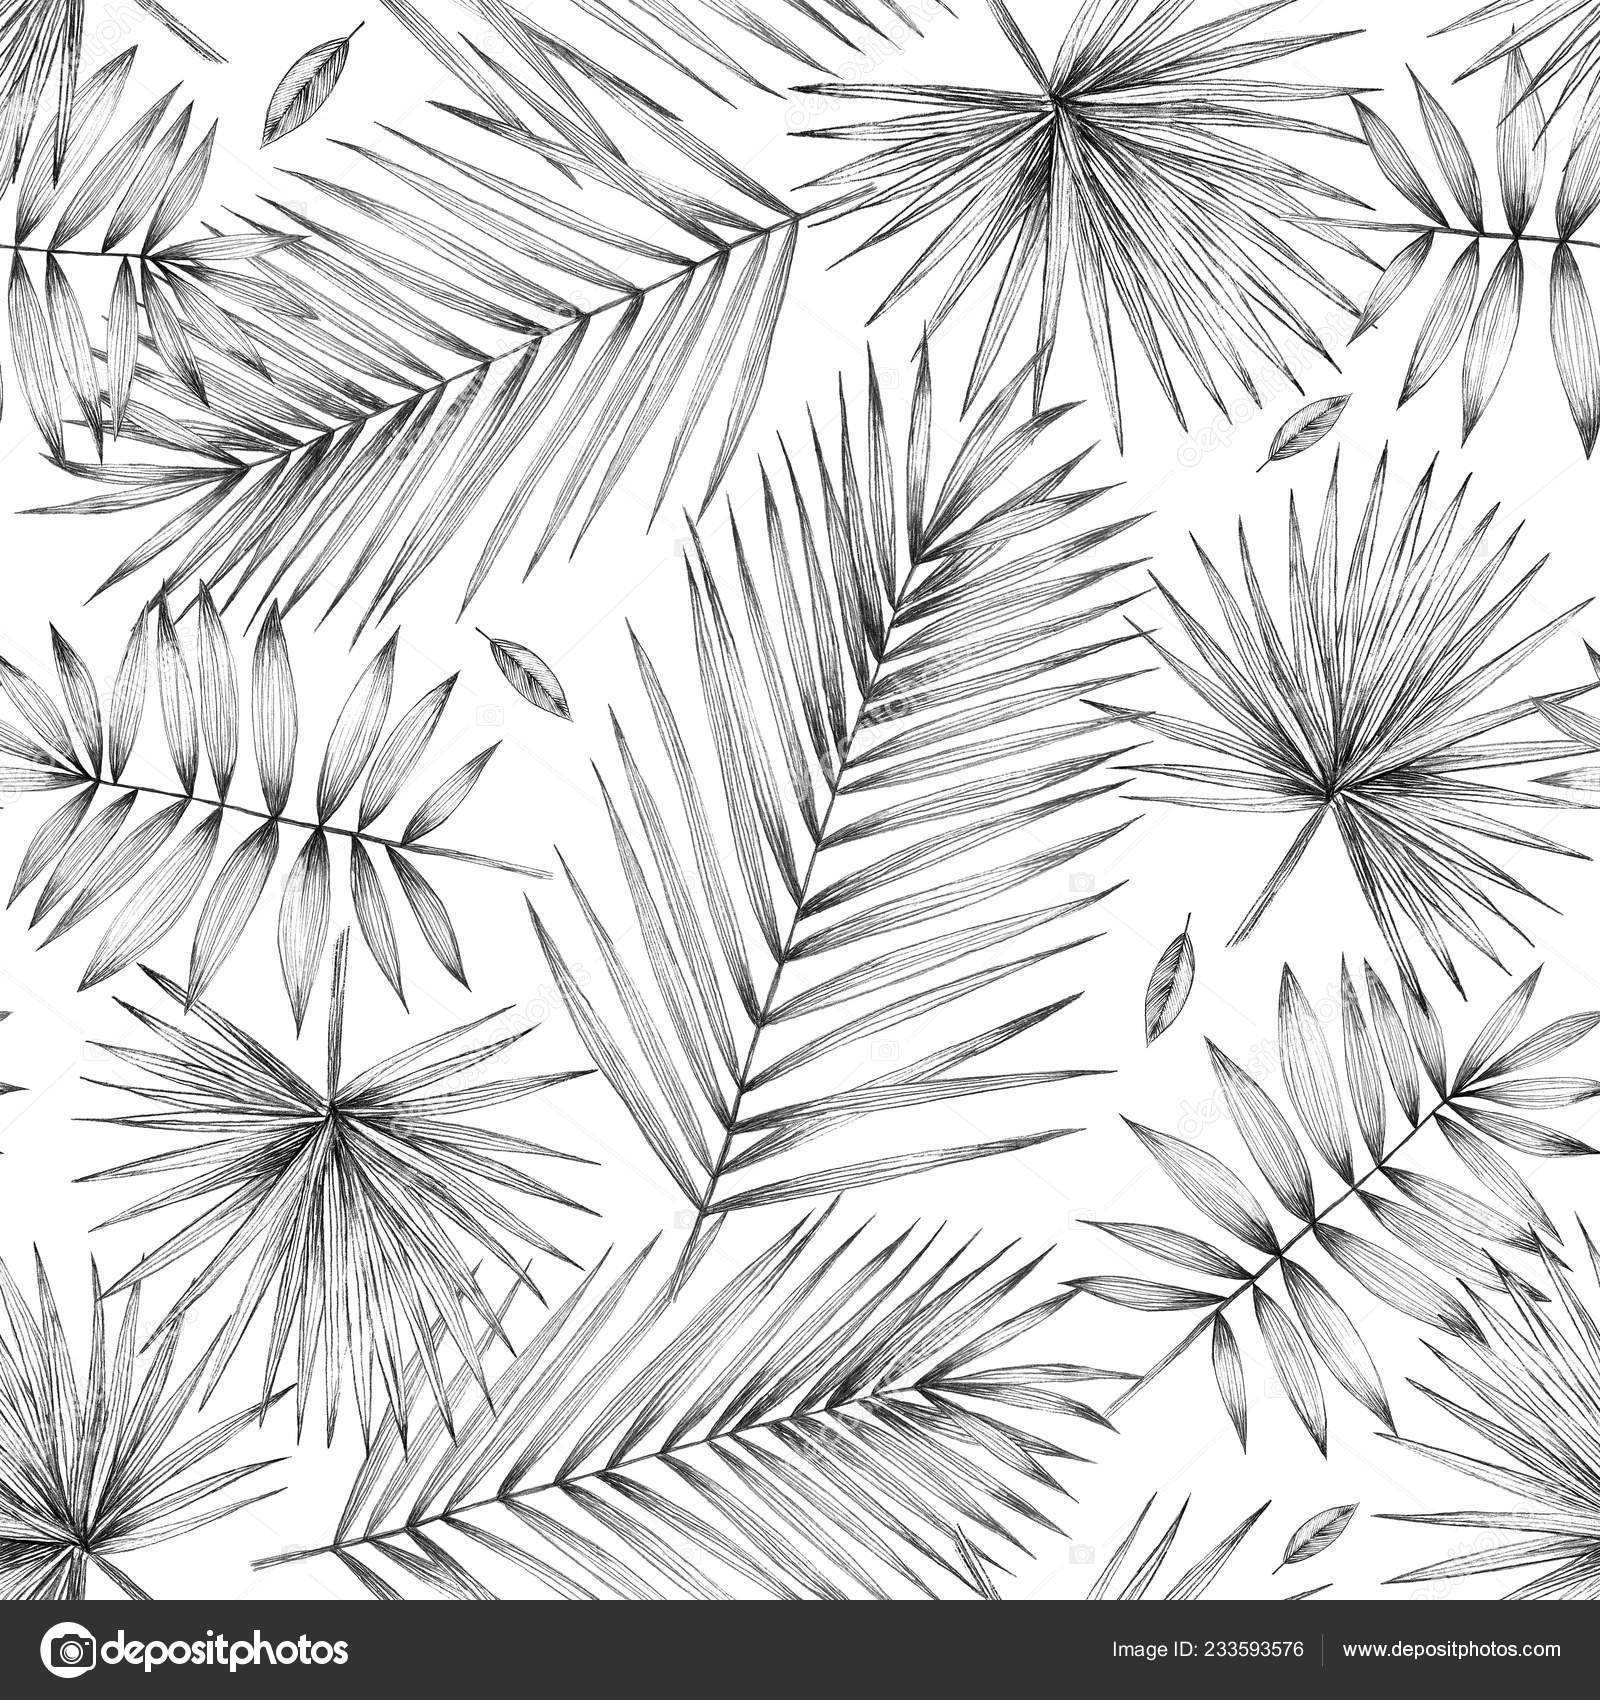 Seamless Pattern Palm Leaves Vintage Illustration Simple Pencil Drawing Manual Stock Photo C P Art 233593576